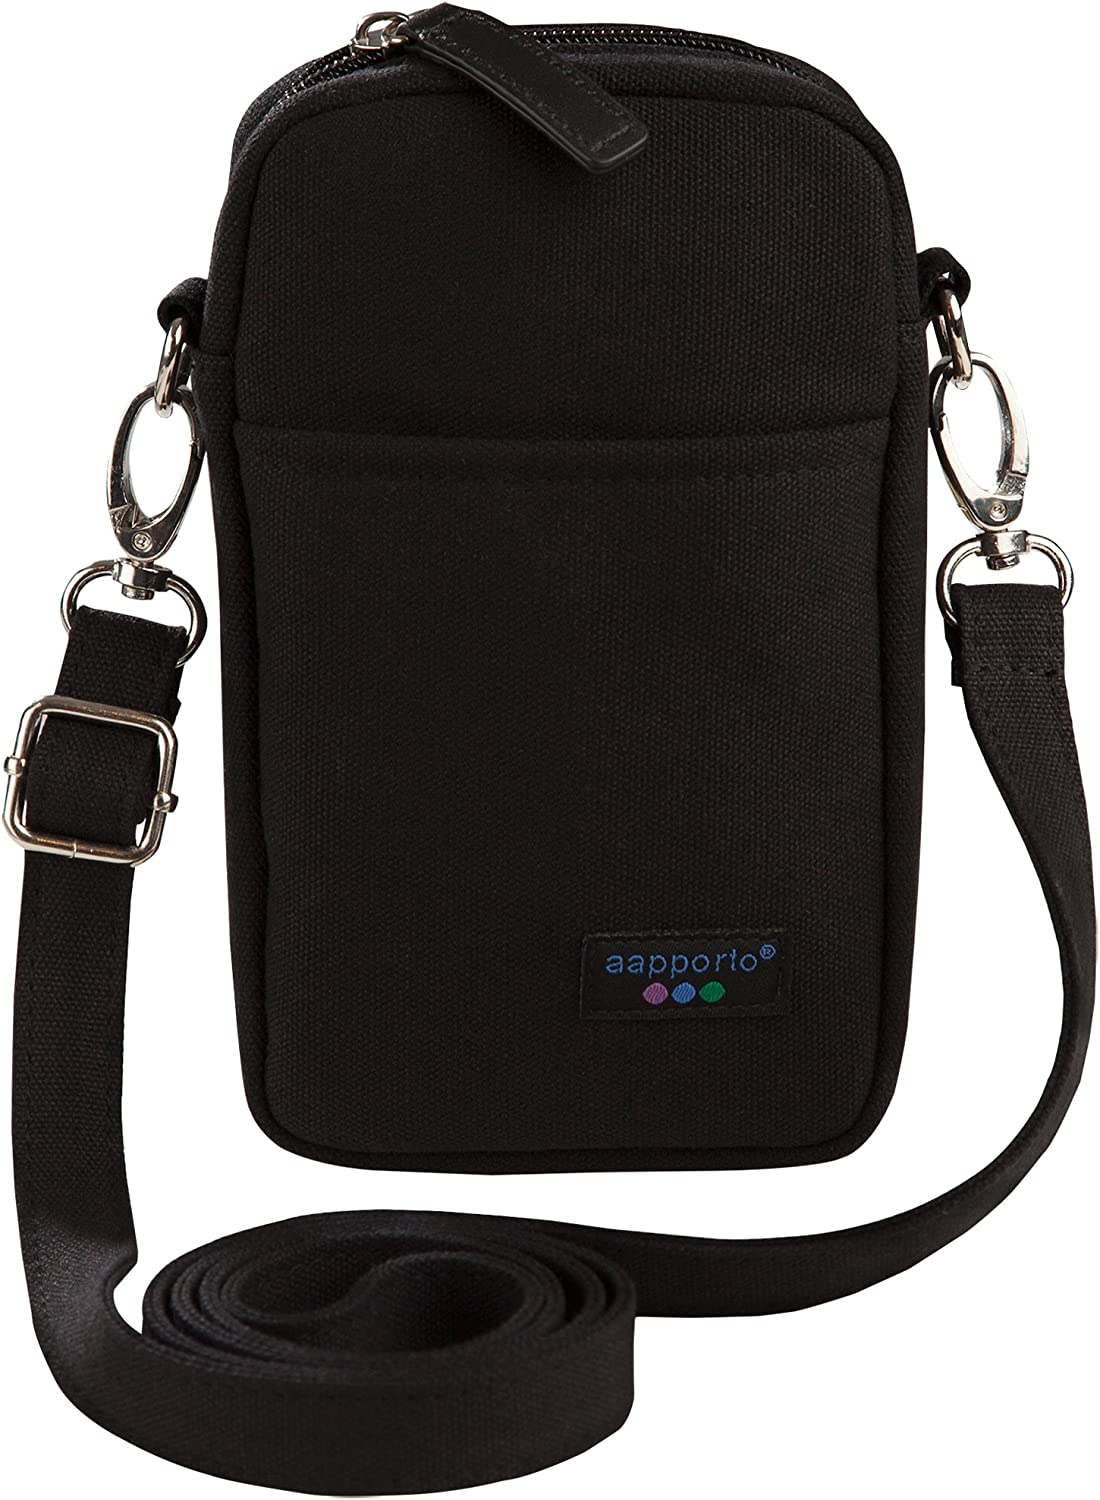 Aapporto Cellphone Purse Black Crossbody Shoulder Bag - for iPhone 11 Pro Max XR X XS 7 8 Plus Galaxy S10 S10+ S9 S8 Note10 - Strap Adjusts - Soft Case Pouch - Belt Attach - Zip Compartment for Cards